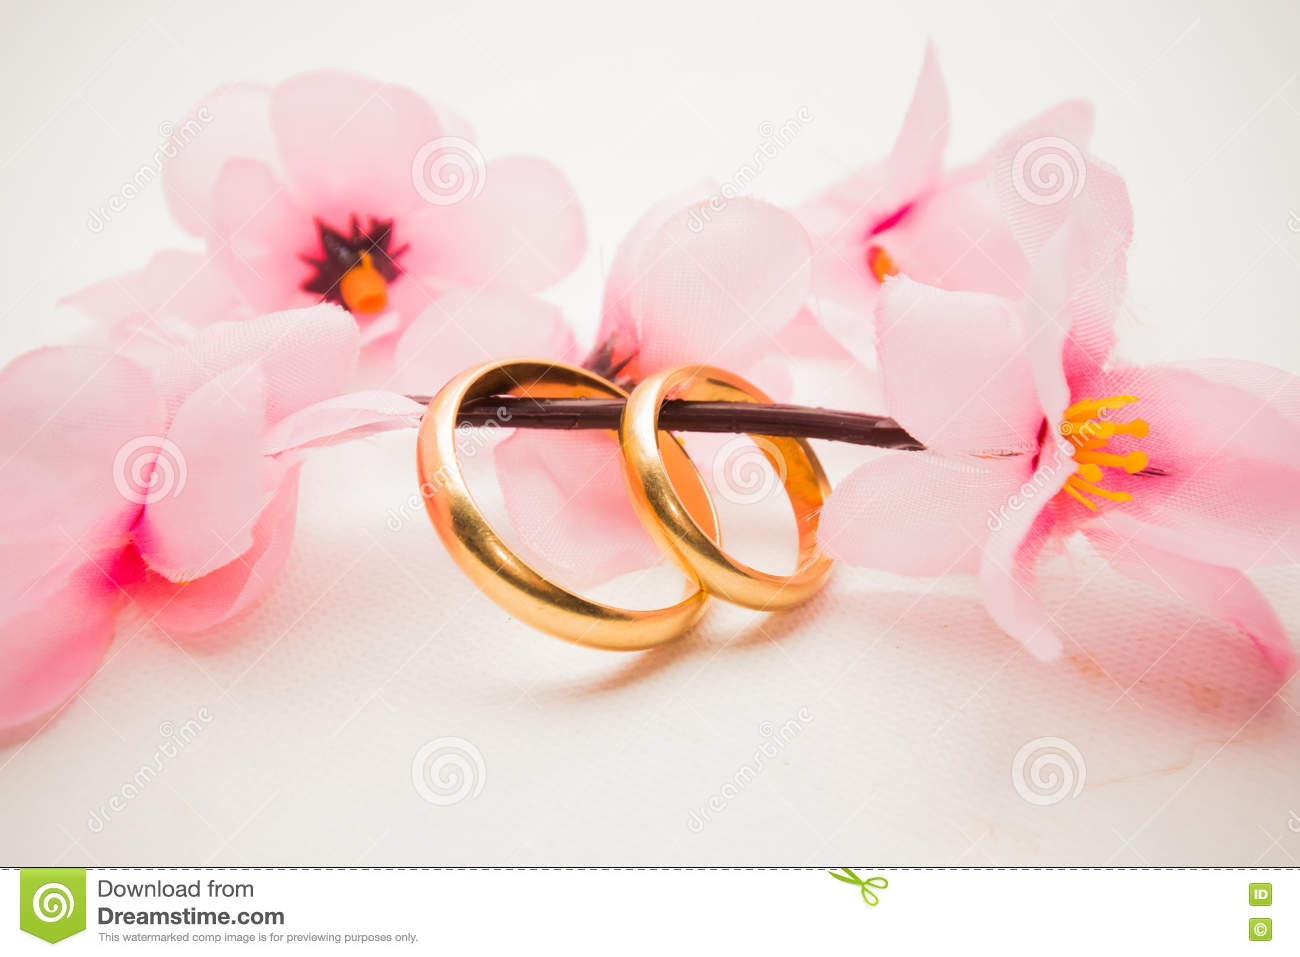 Wedding Rings And Pink Flowers Stock Image - Image of ceremony ...